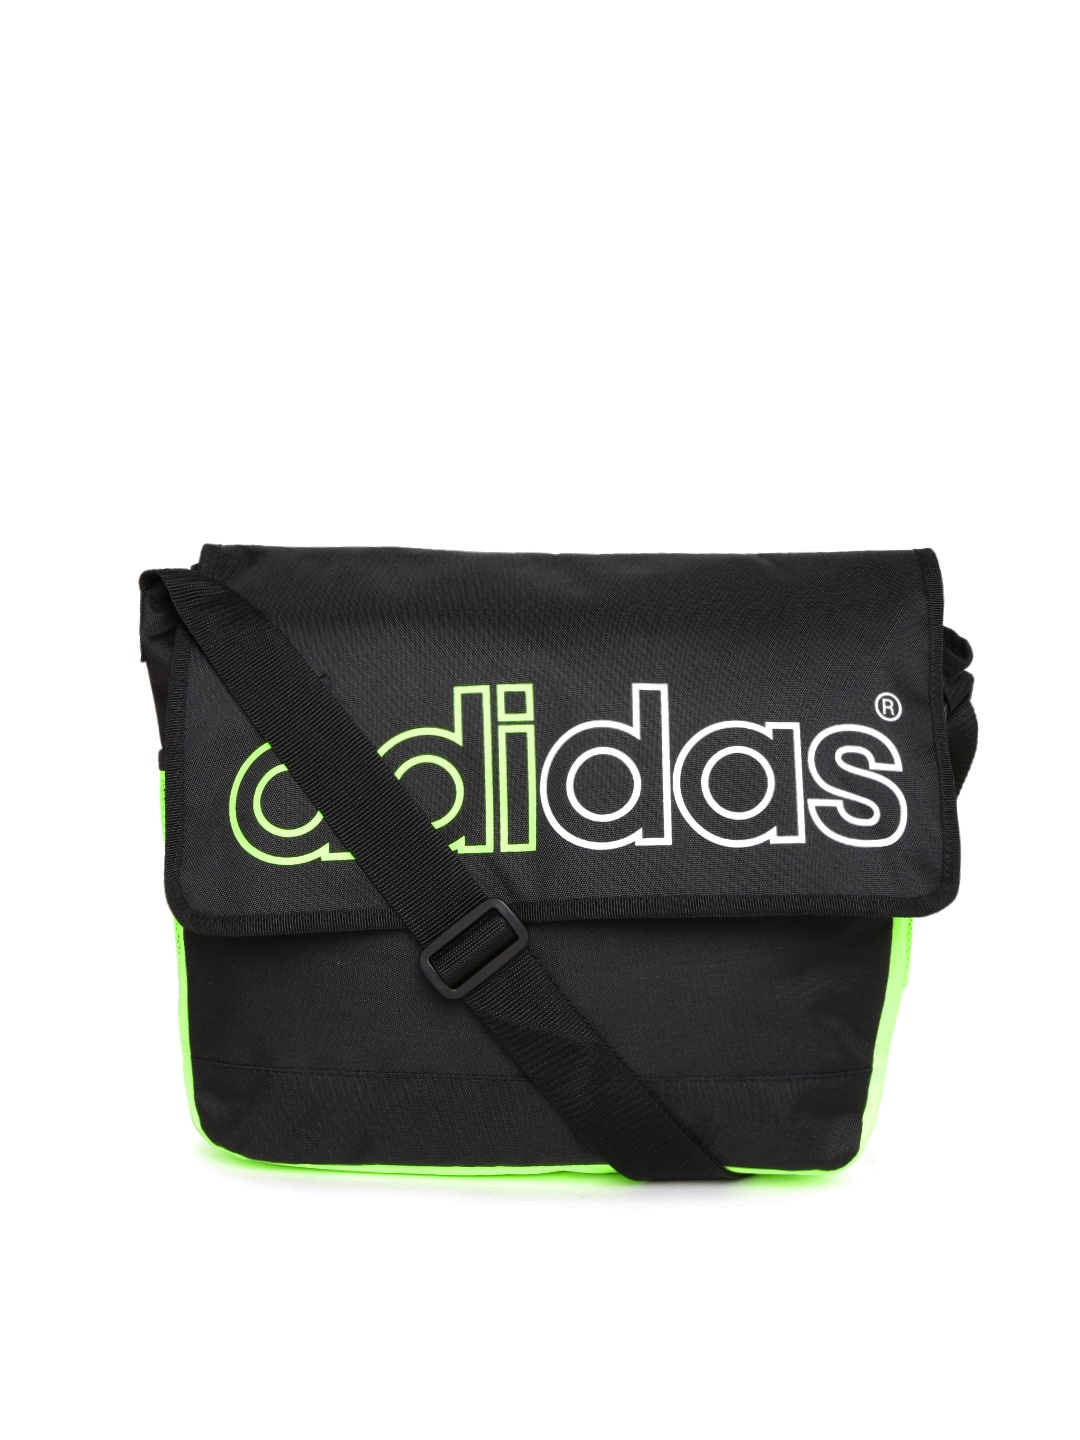 2a86c74d10a1 Adidas neo ak2369 Men Black And Neon Green Messenger Bag- Price in India